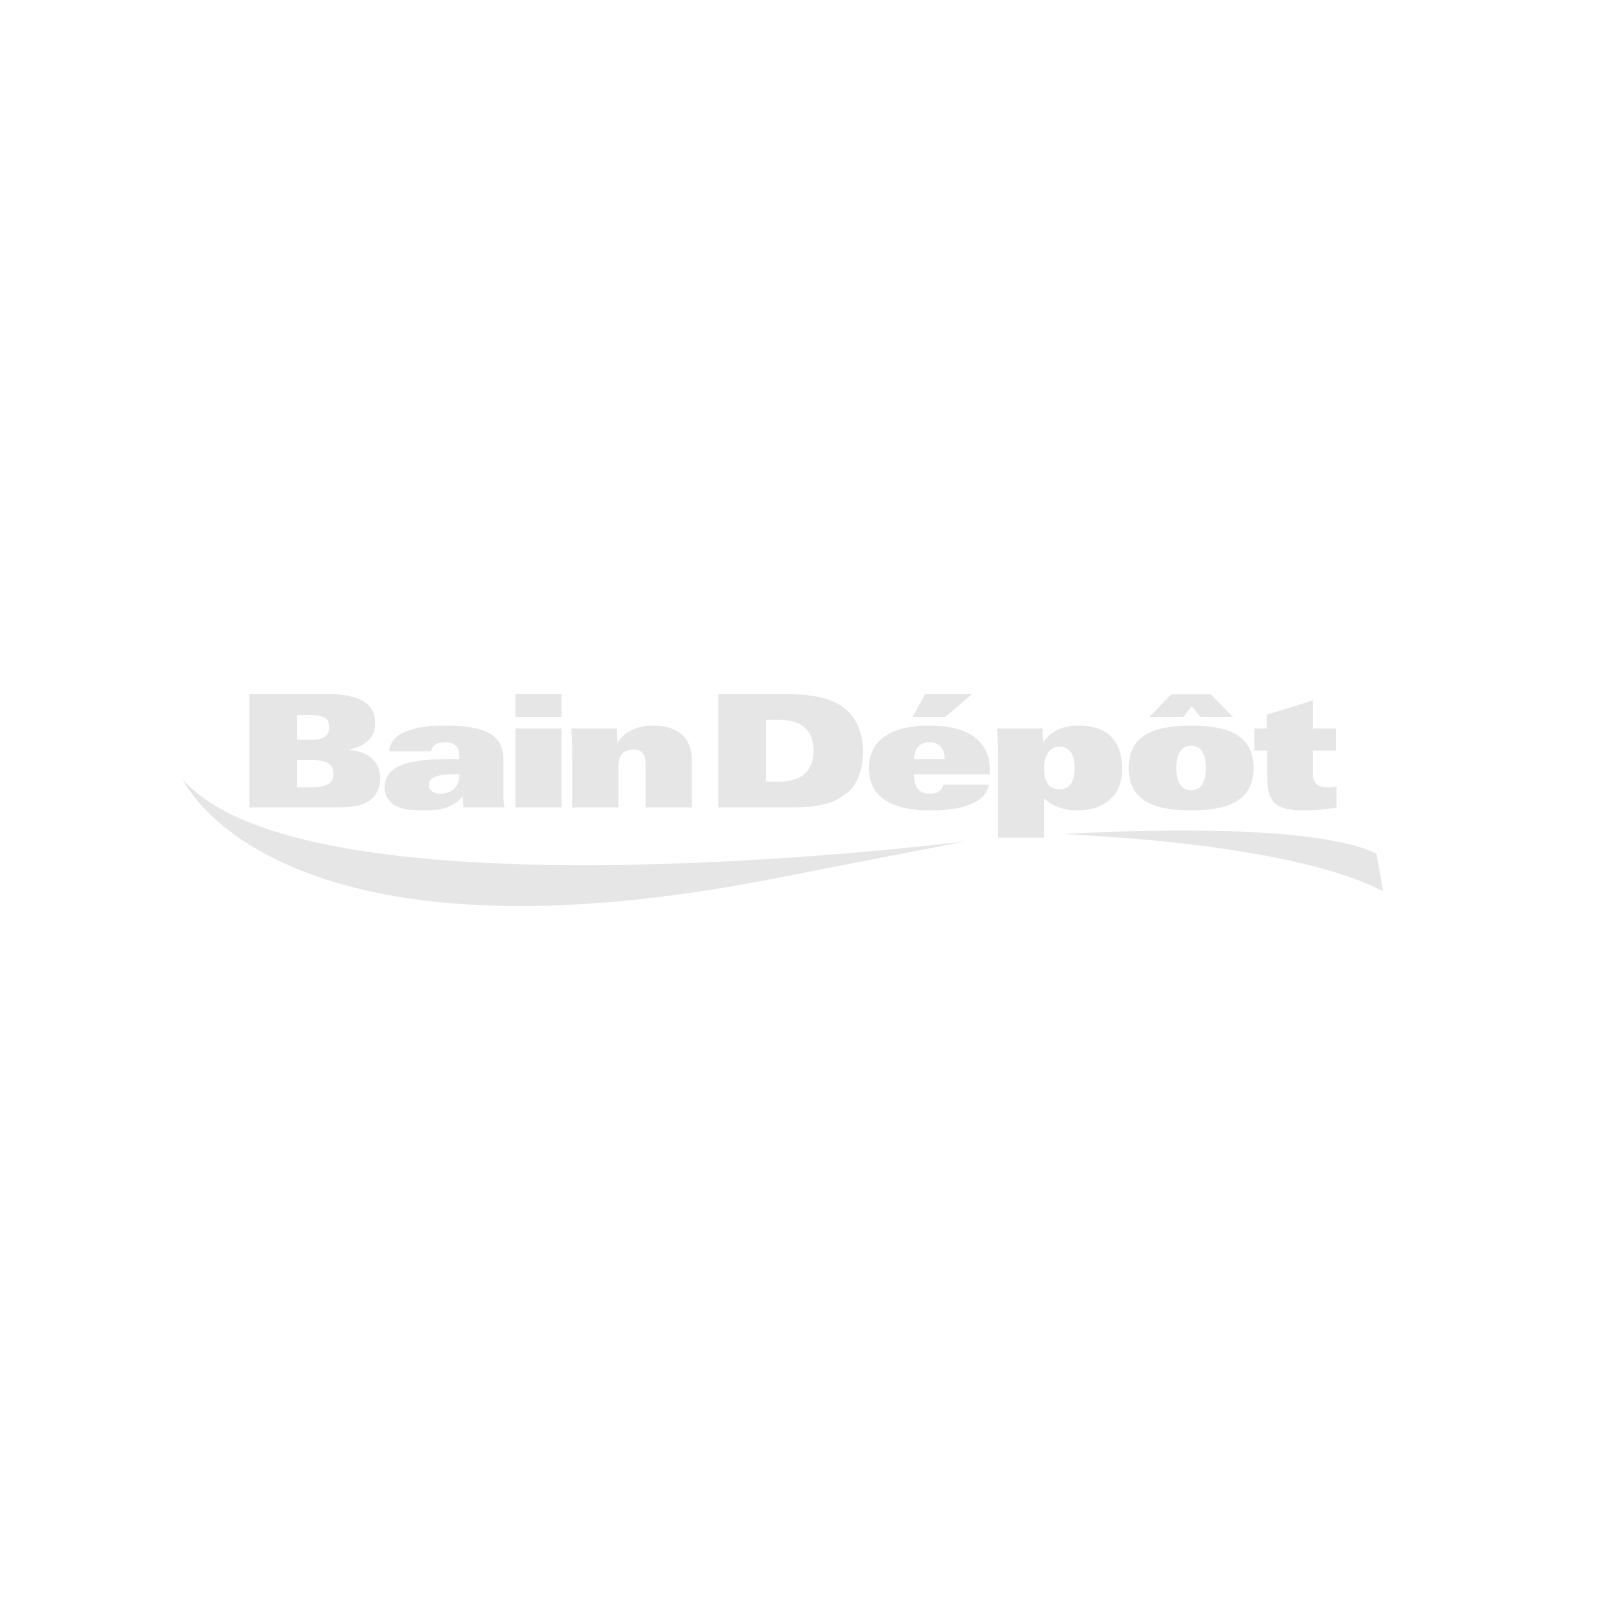 "Walk-in shower with 36"" front panel, 36"" side panel and 12"" swivel panel"